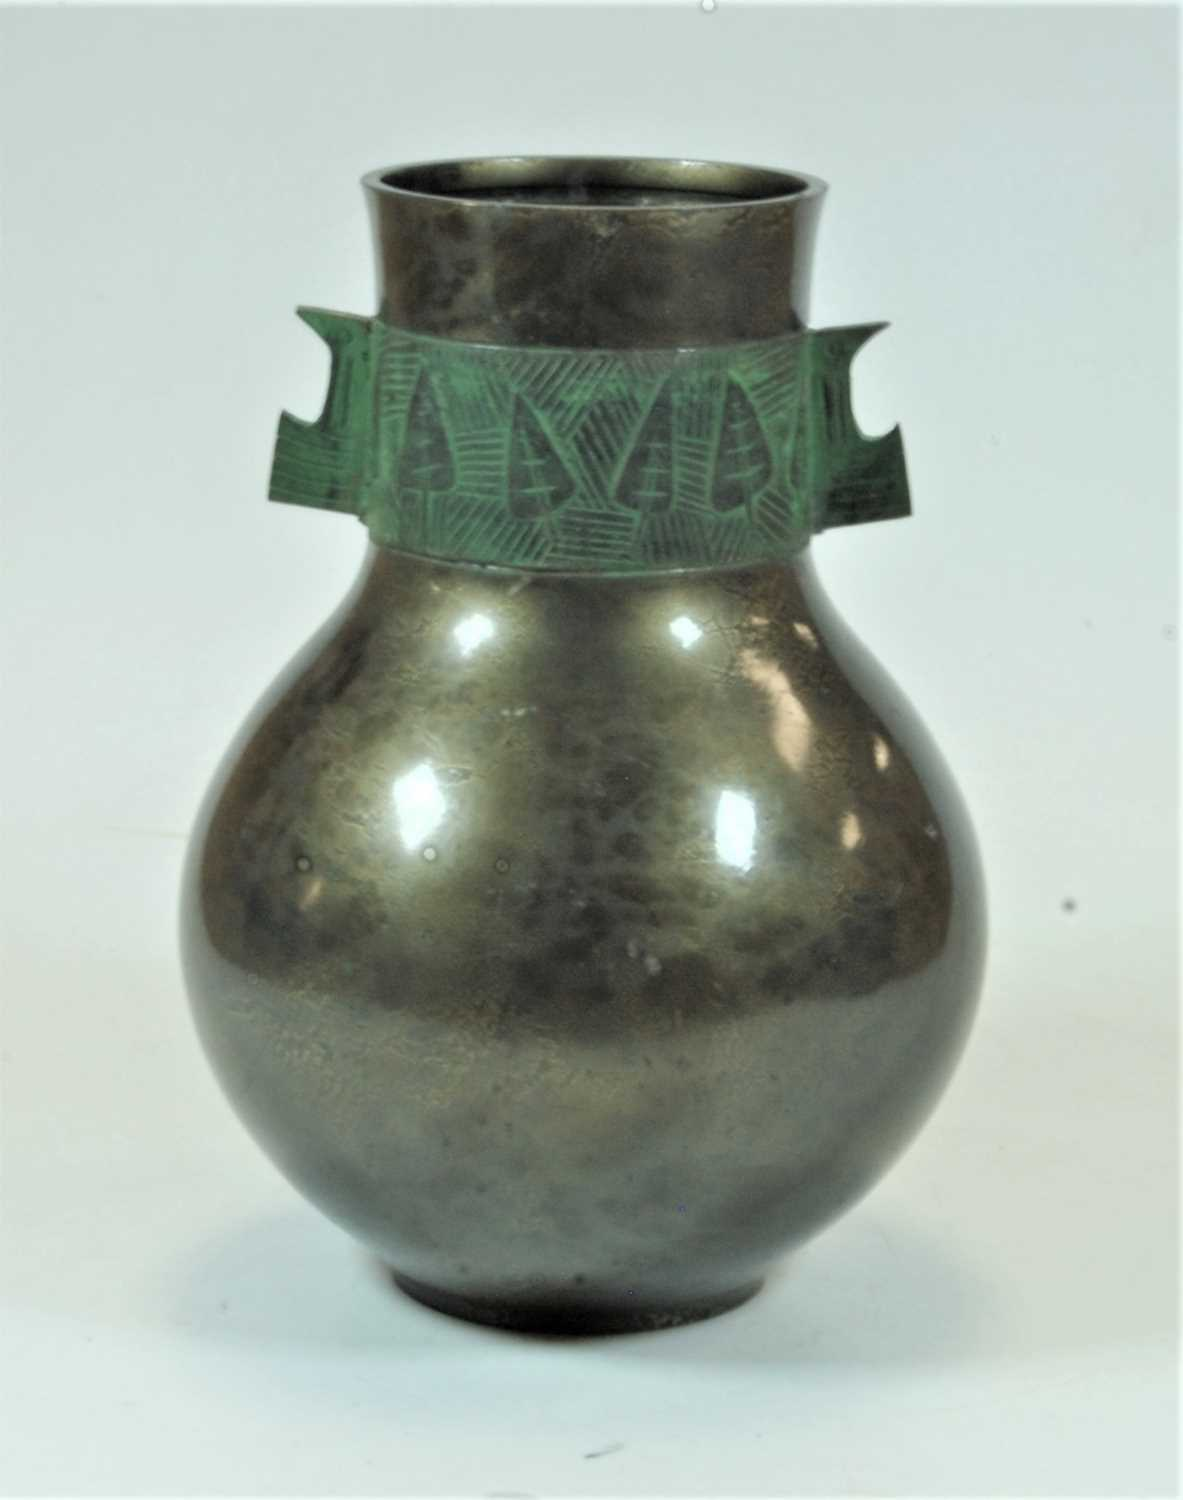 Lot 26 - A Japanese Showa period bronze metal vase of bulbous form, the frieze having a band incised with